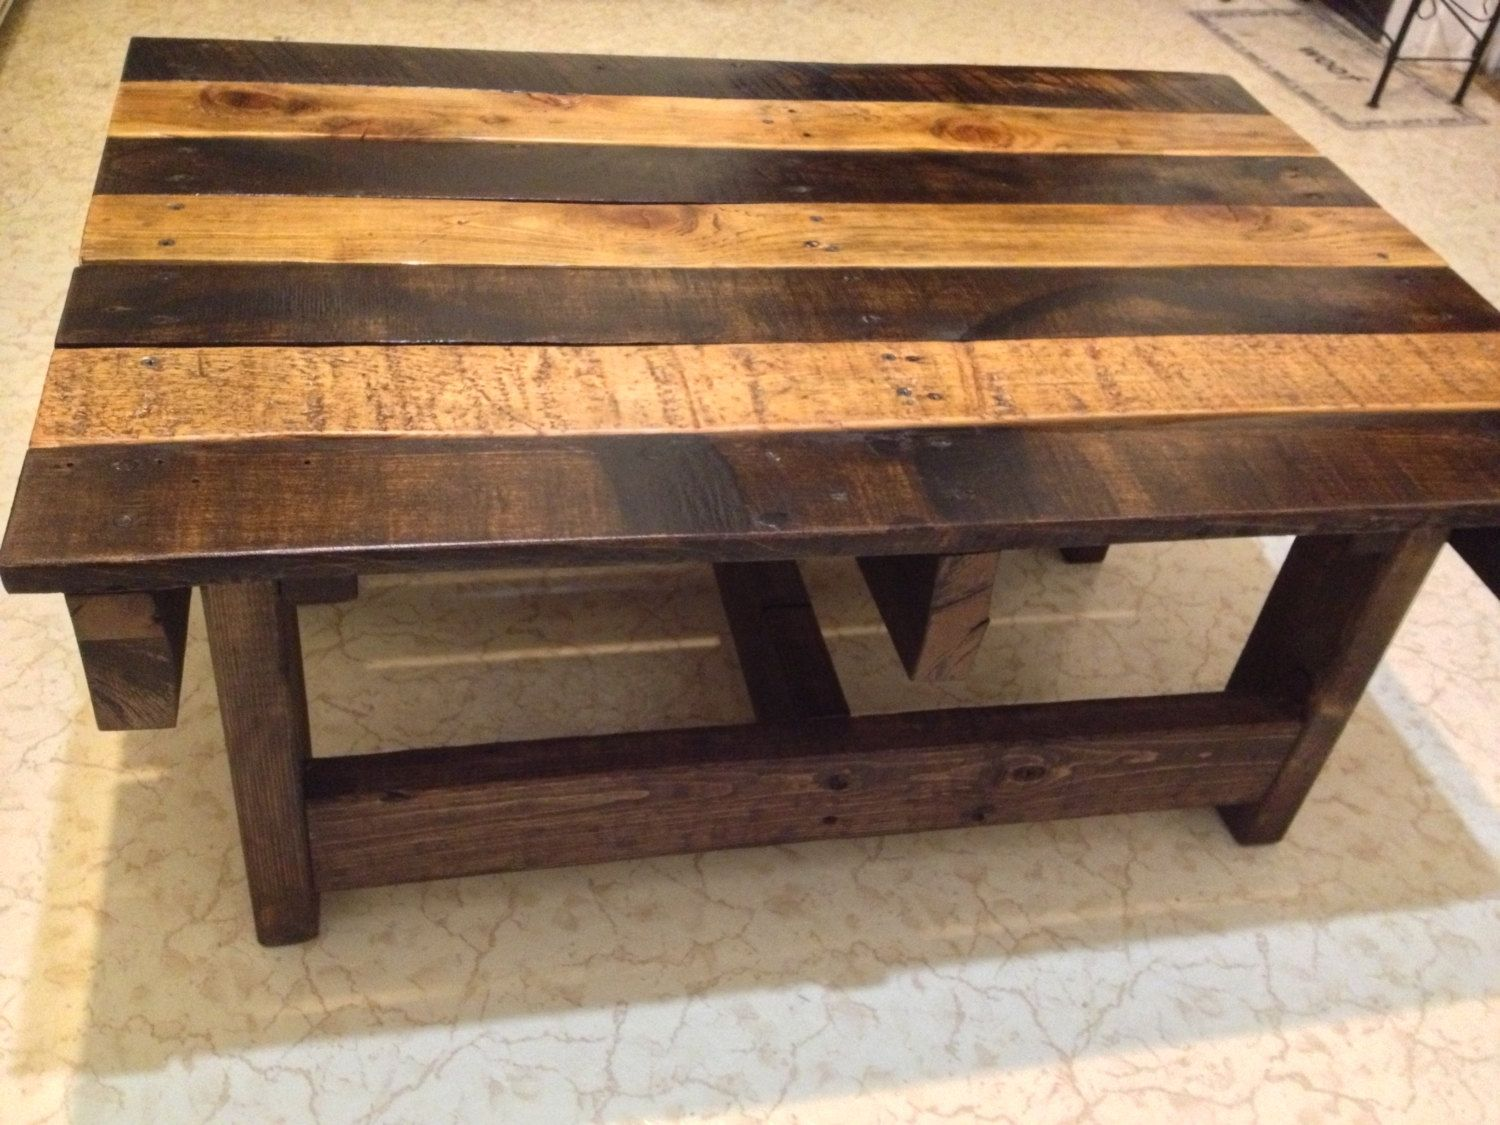 Hand crafted handmade reclaimed rustic pallet wood coffee table by kevin davis woodwork - How to make rustic wood furniture ...